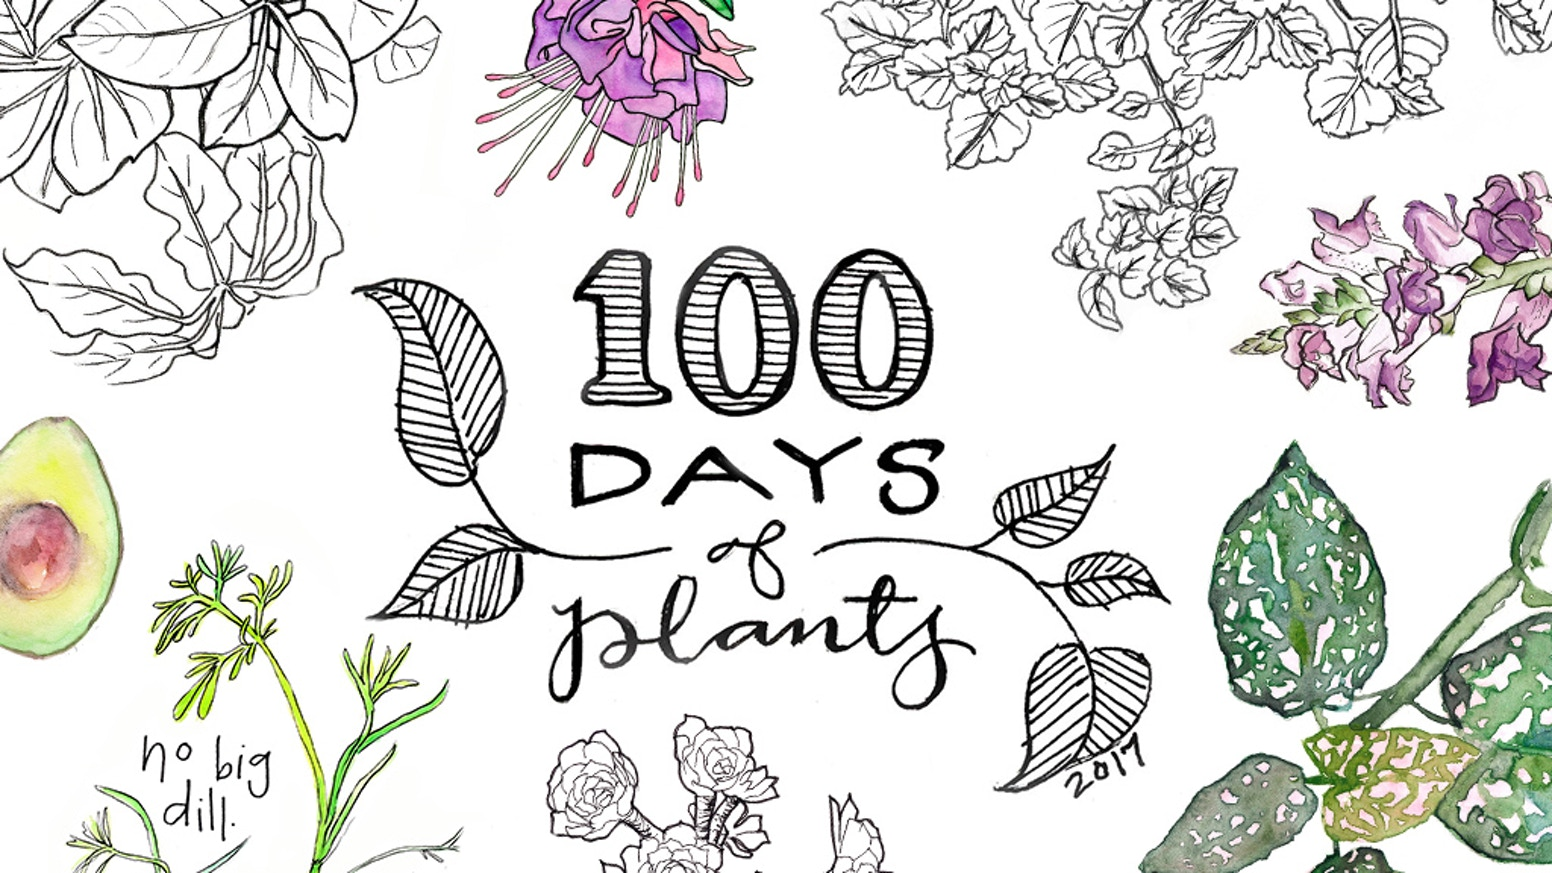 A book containing illustrations of plants created during my #100DaysofPlants project.